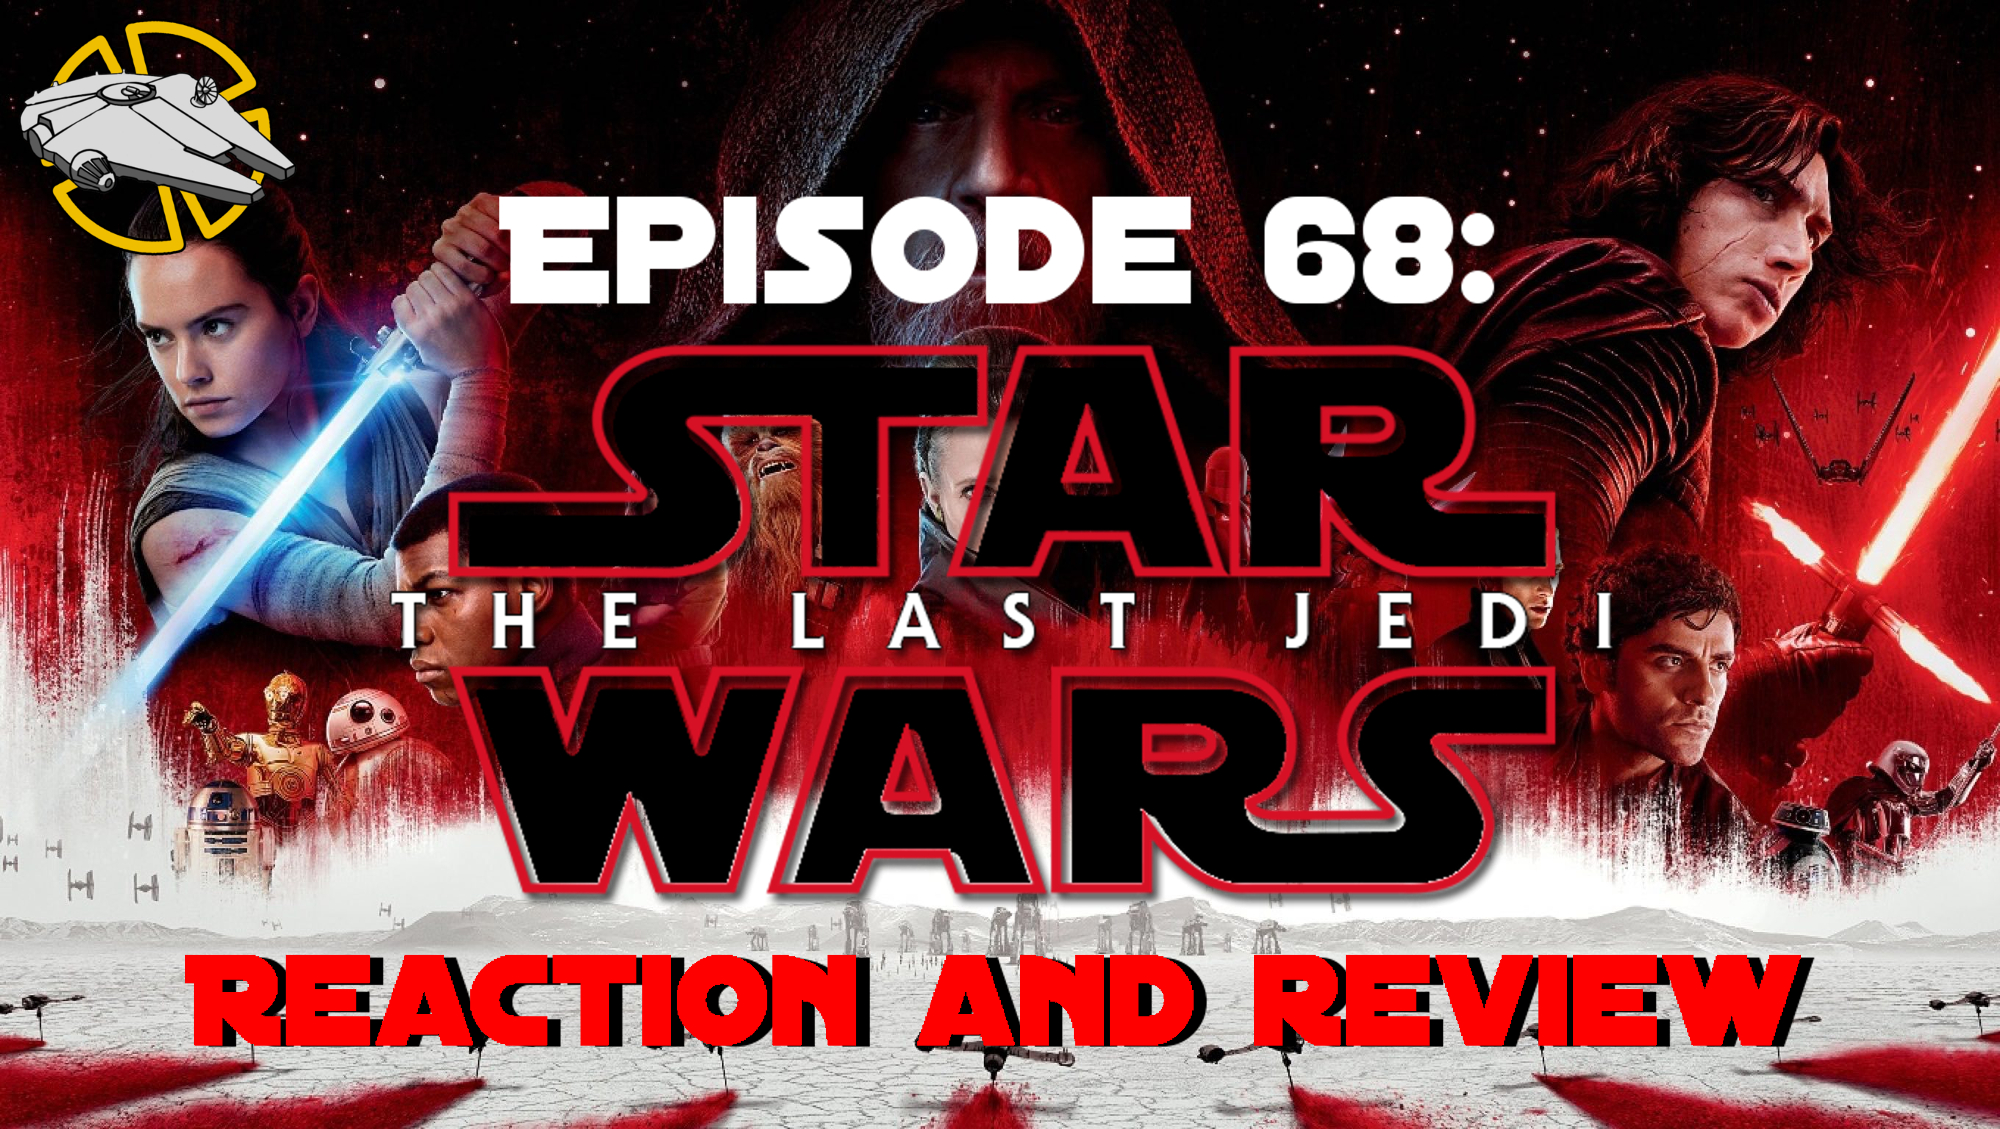 Episode 68: The Last Jedi Reaction and Review